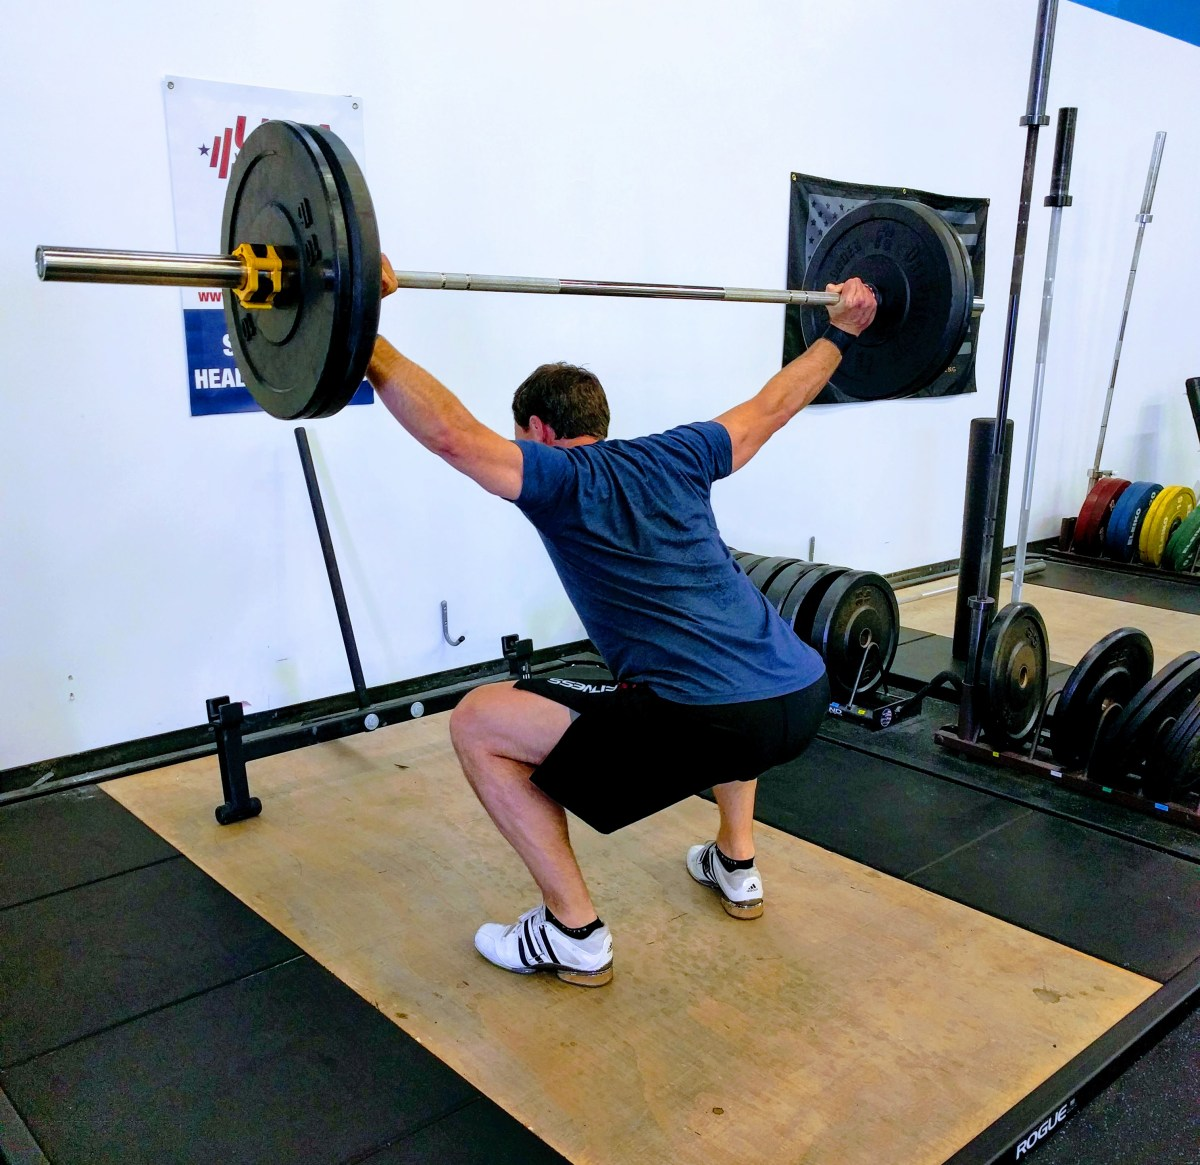 Overhead Squat, mix up your weights and reps for greater strength gains